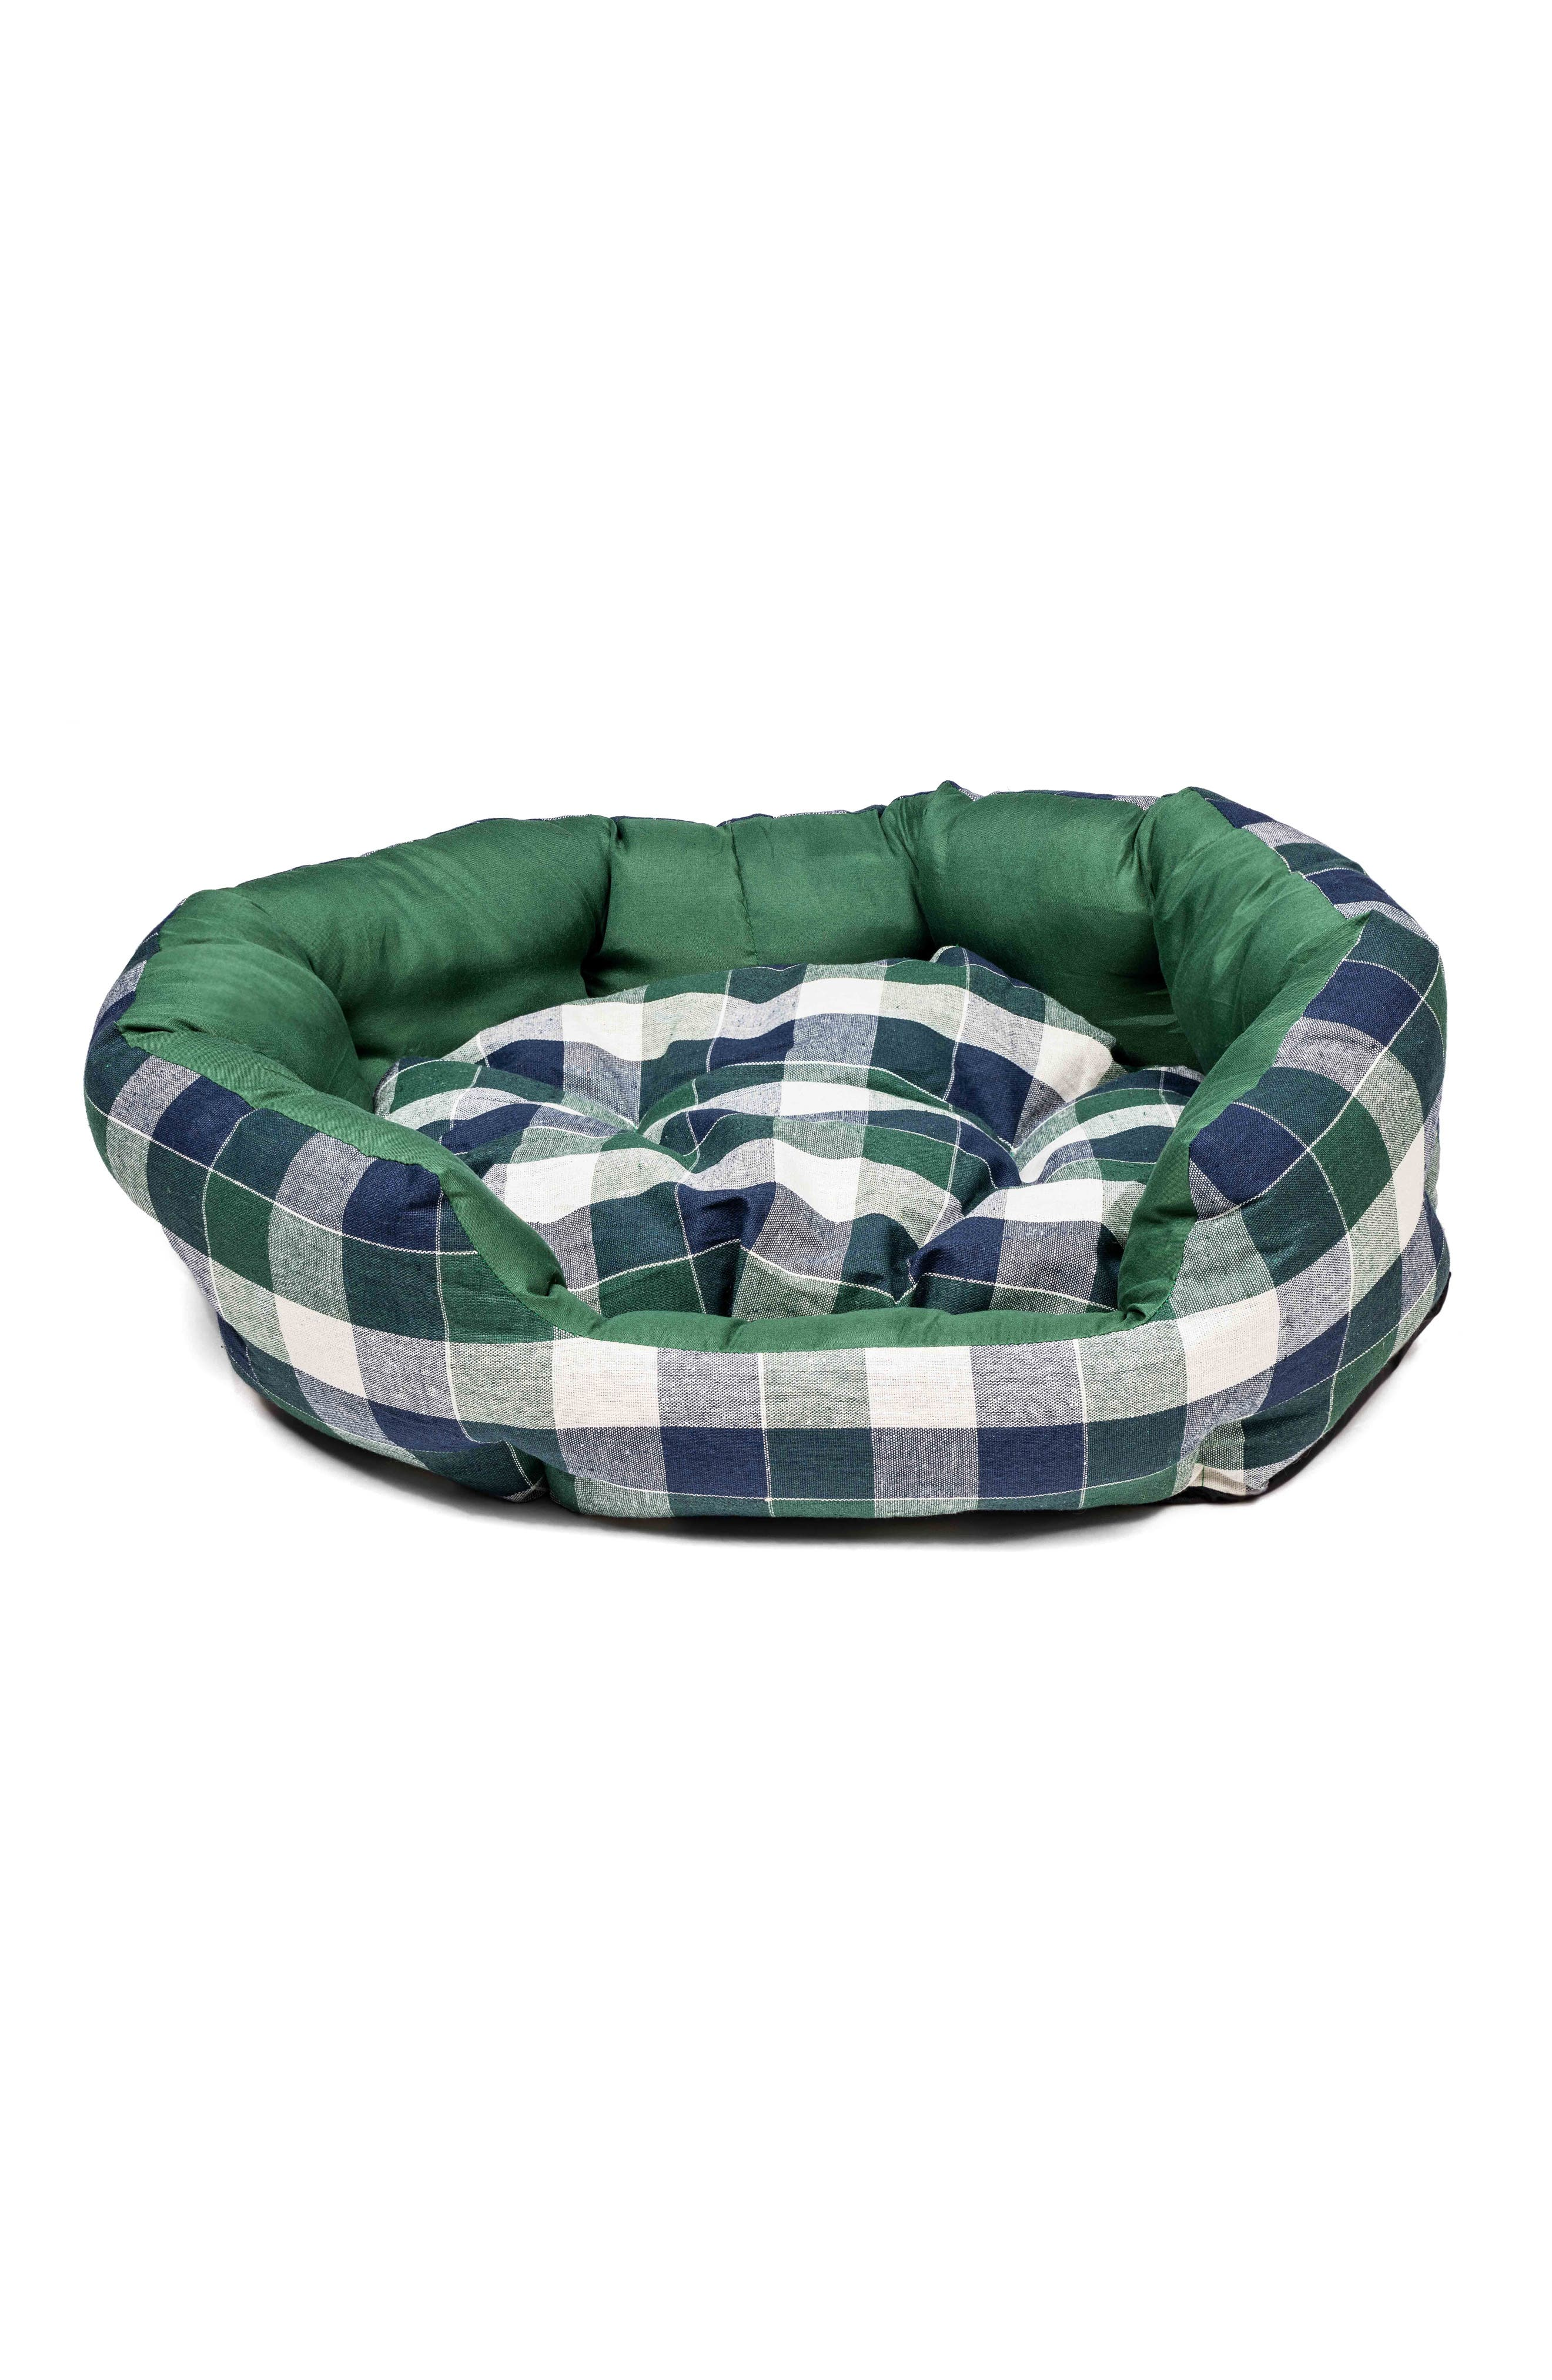 Duck River Textile Hasley Round Pet Bed Size One Size  Green